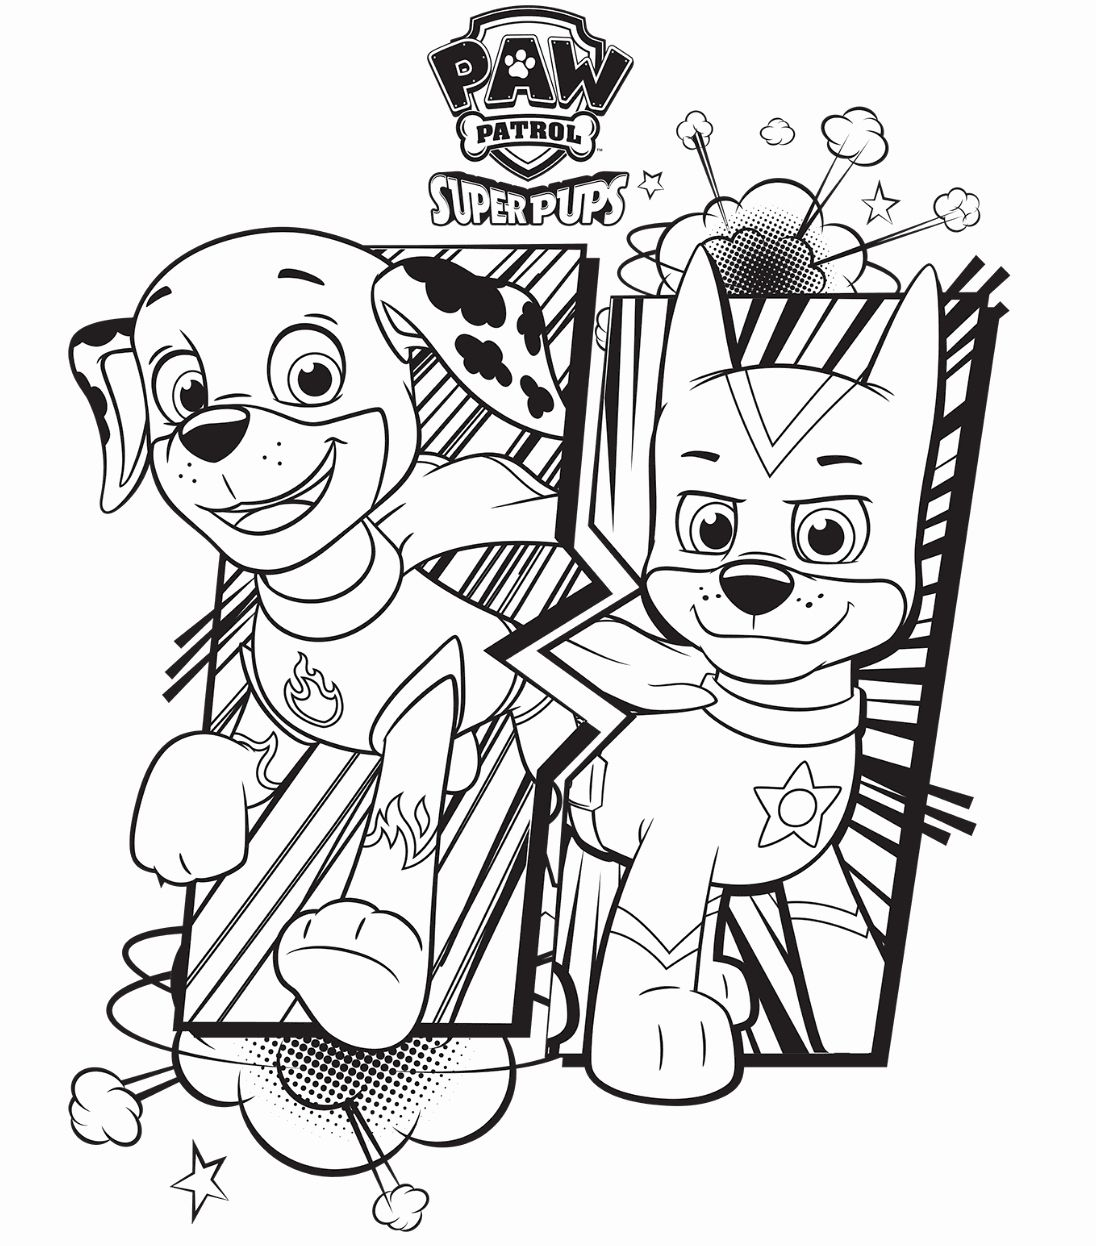 Paw Patrol Coloring Page New Paw Patrol Coloring Pages Coloring Home Paw Patrol Coloring Paw Patrol Coloring Pages Birthday Coloring Pages